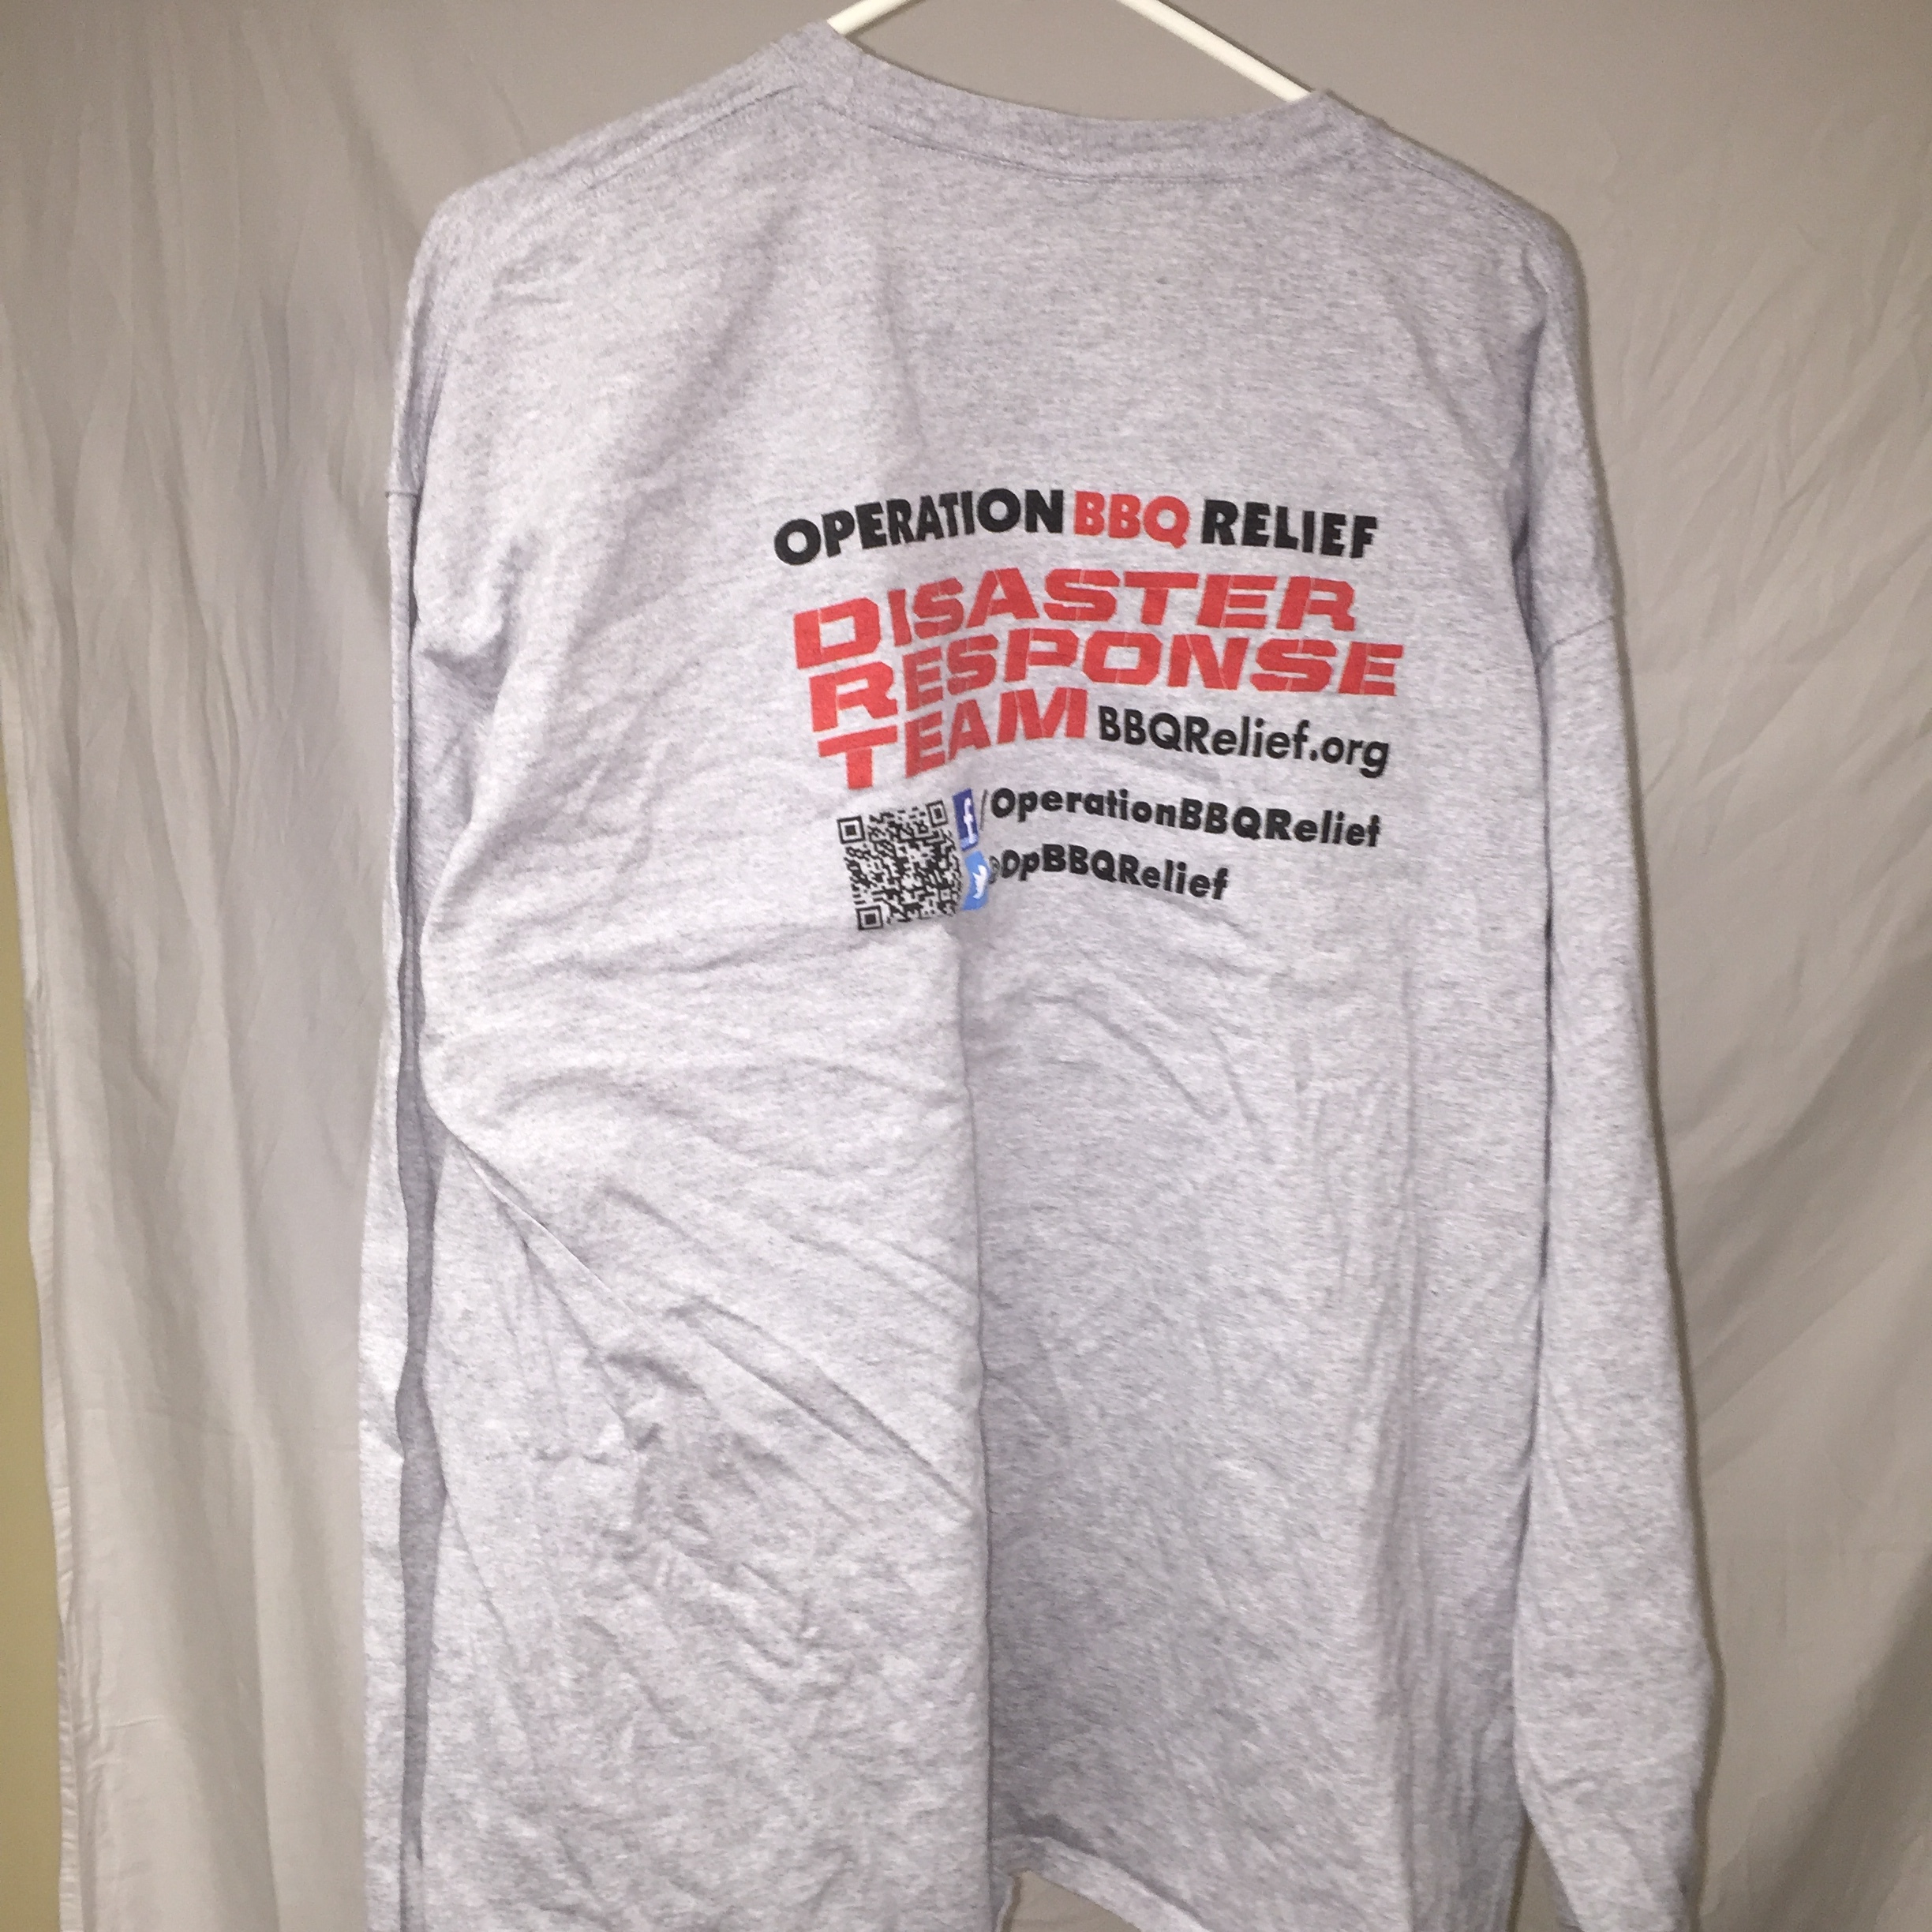 2014 - Disaster Response Team - T-Shirts (Black or Grey) Long Sleeve